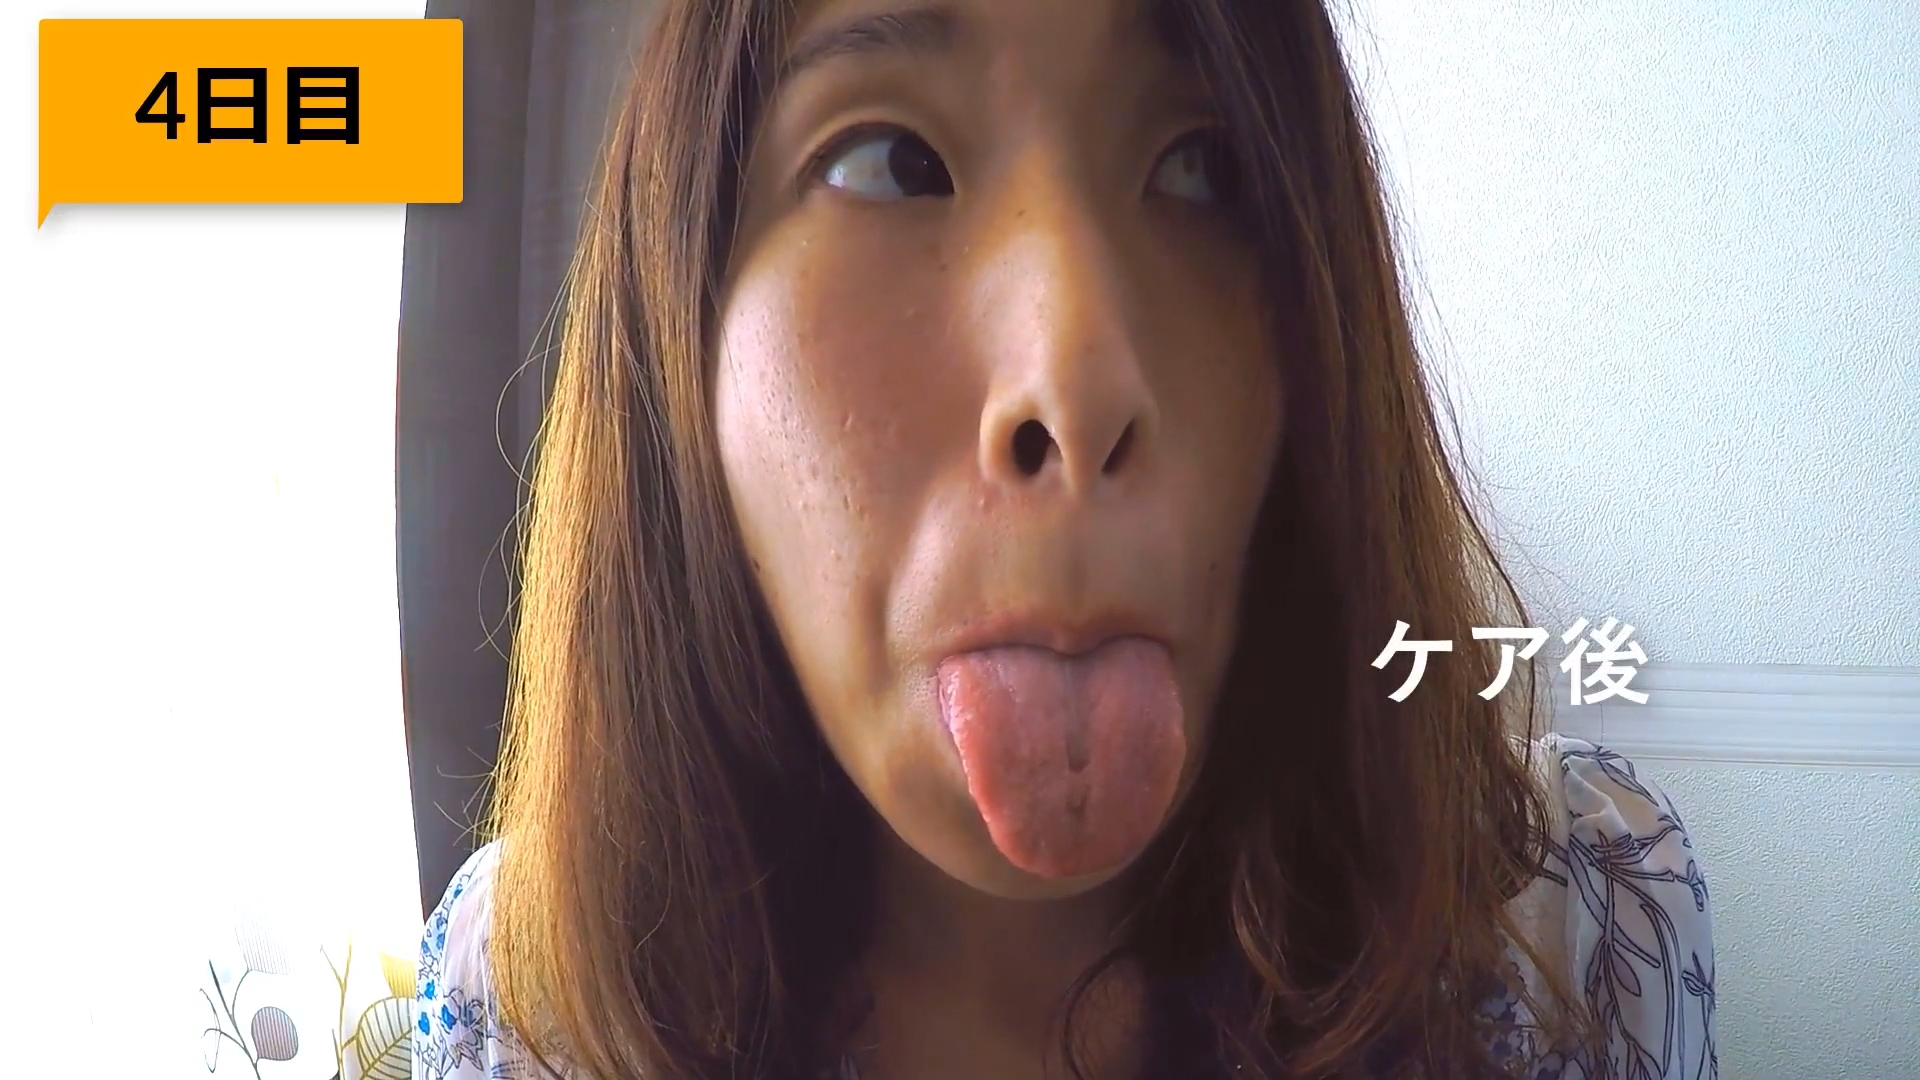 YouTuberの割れ汚舌 (13)